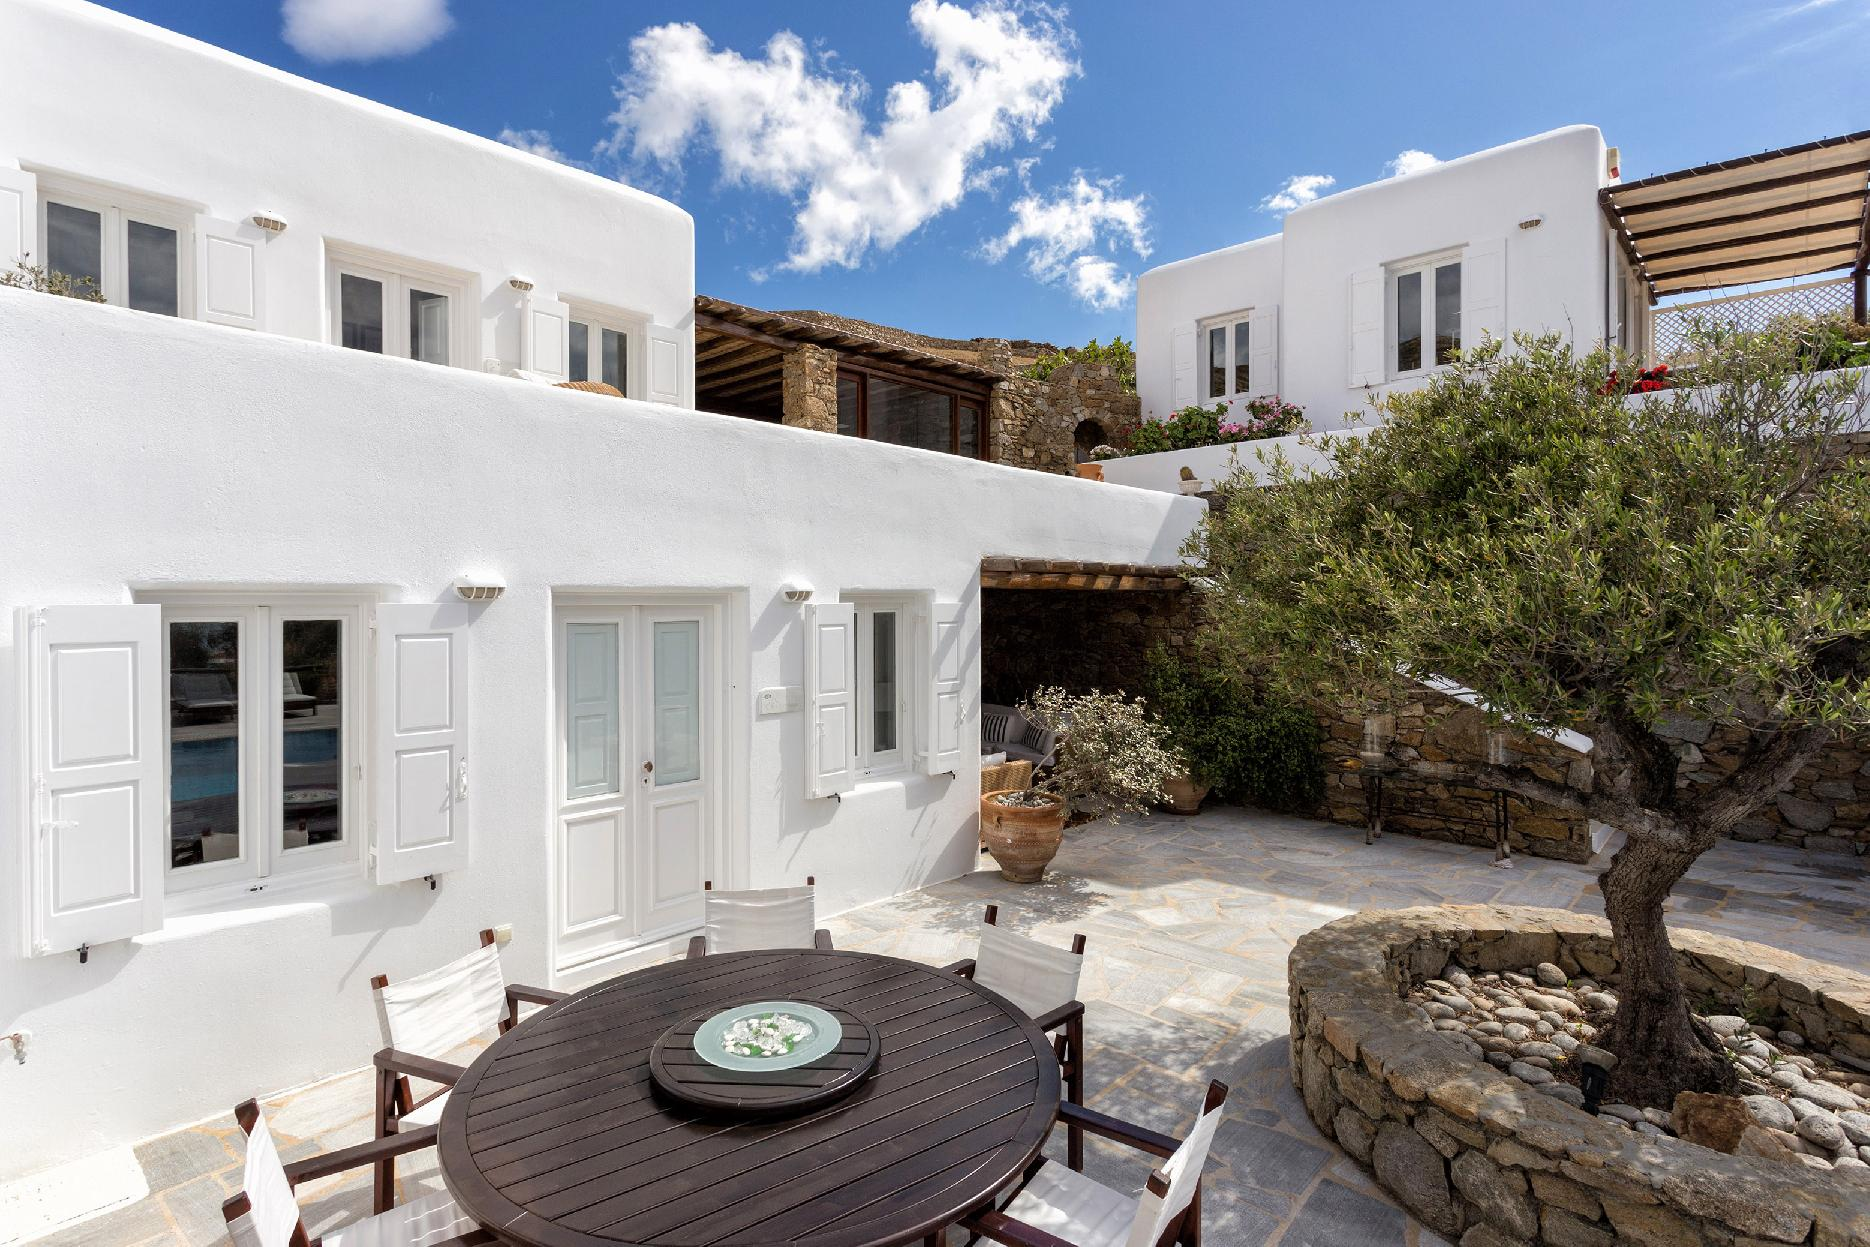 Apartment The Galaxy Mykonos villa with large pool and yoga platform photo 6005297